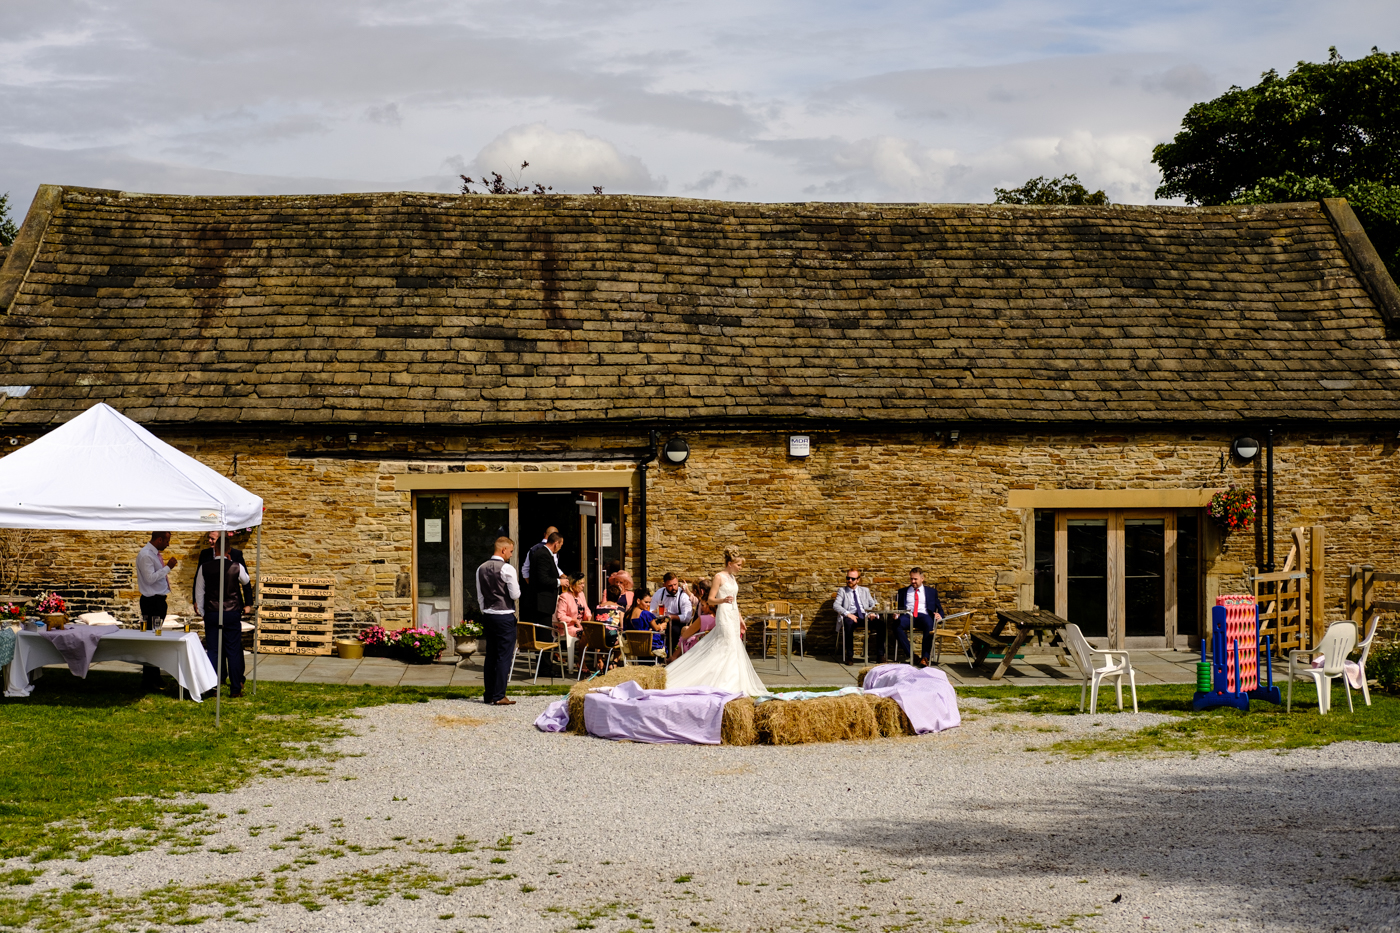 Image of Northorpe Barn wedding venue